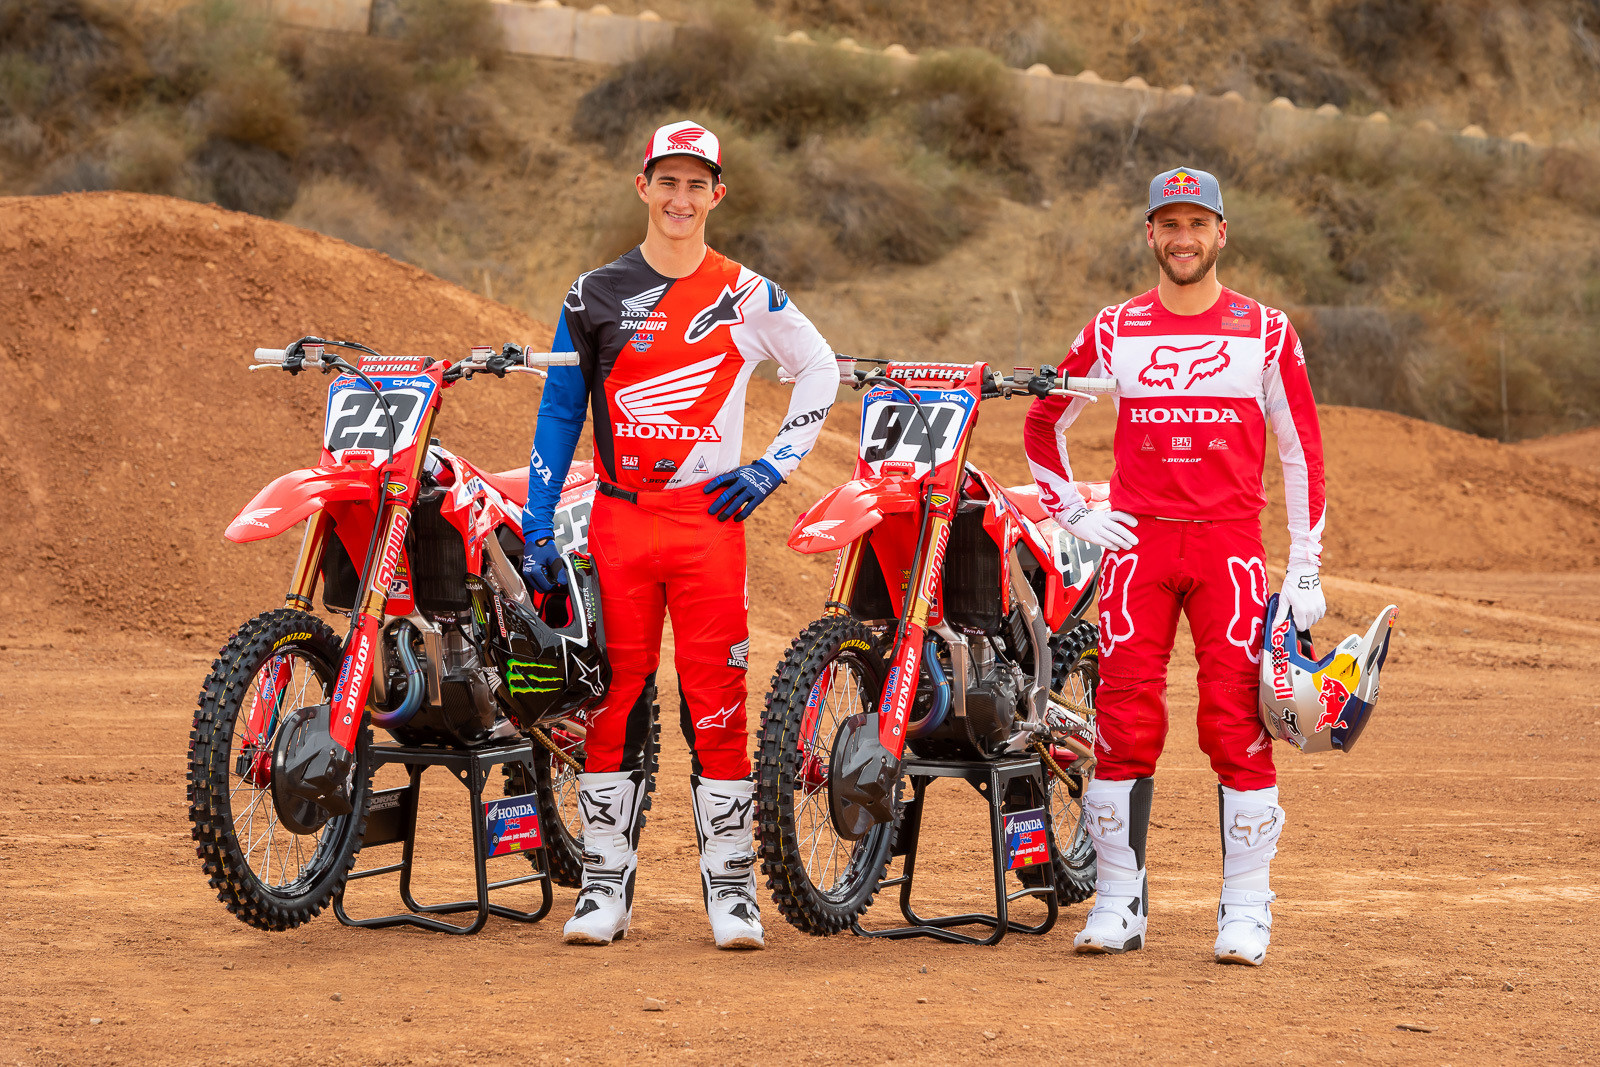 After a pair of 250 Supercross titles, Chase Sexton will move up to the 450 class alongside Ken Roczen.